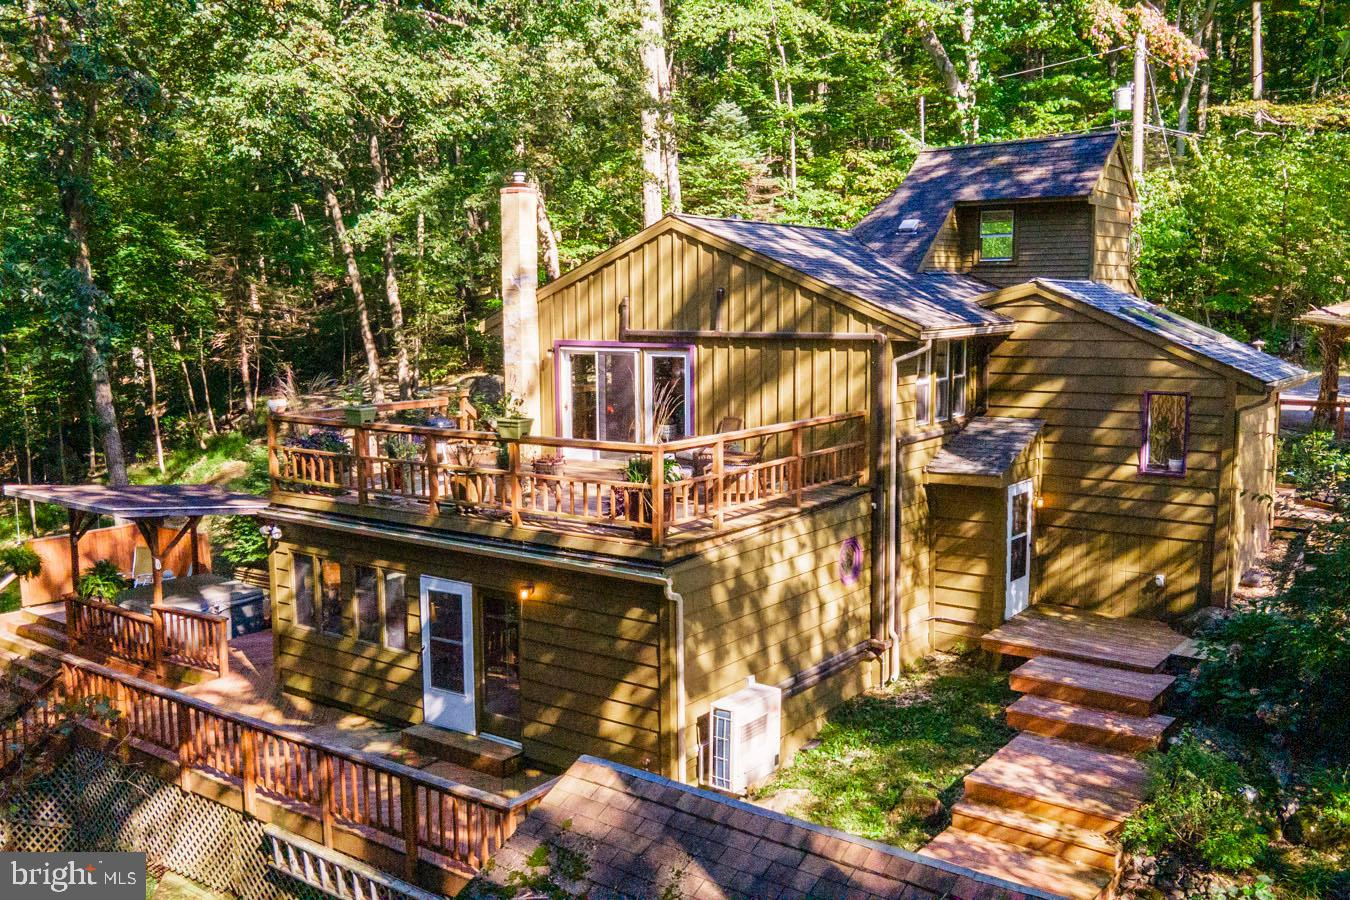 Are you looking for a non-traditional home that is far from ordinary? Do you desire a peaceful location amongst a natural landscape on 2+ acres where you can spend your time enjoying the little things that life has to offer? You now have a rare opportunity to be the new owner of this contemporary cabin that is situated in a natural setting amongst mature trees. It is located at the end of a private road in the Perkiomen School District. The wrap-around multi-level deck offers over 3,000 square feet of space to enjoy the wildlife and beauty of mother nature. Inside you will find quaint living spaces with vaulted ceilings and exposed beams that add authenticity and overall, a very regal feel to the home. An artist would love the amount of natural light through the abundance of windows and skylights to show off their art or simply to be enjoyed by anyone that loves a bright and airy home. The floor-to-ceiling brick fireplace with slate mantel is the focal point of the dining room making it a perfect place to admire a snow-covered view while enjoying a comforting meal. The natural knotty pine floors complete the feel and luckily, continue throughout most of the living spaces. The generously sized kitchen is open to the dining room and living area which is great for entertaining. If you are someone that believes a home cooked meal is better than anything else, you will love the abundant prep and storage space, along with the newer appliances. It offers slate counters, a double bowl sink, glass front cabinetry, a 5-burner gas stove, dishwasher, a side-by-side refrigerator/freezer and additional built-in storage shelves. There is also a separate morning room/office with skylights and sliding glass door to the deck. The cozy living room area could double as an artist studio as it creates a sense of ambiance with a built-in bookcase, cathedral ceiling, inspiring views, and a spiral staircase to the loft/office/studio. This main level also promotes a guest bedroom with pine f